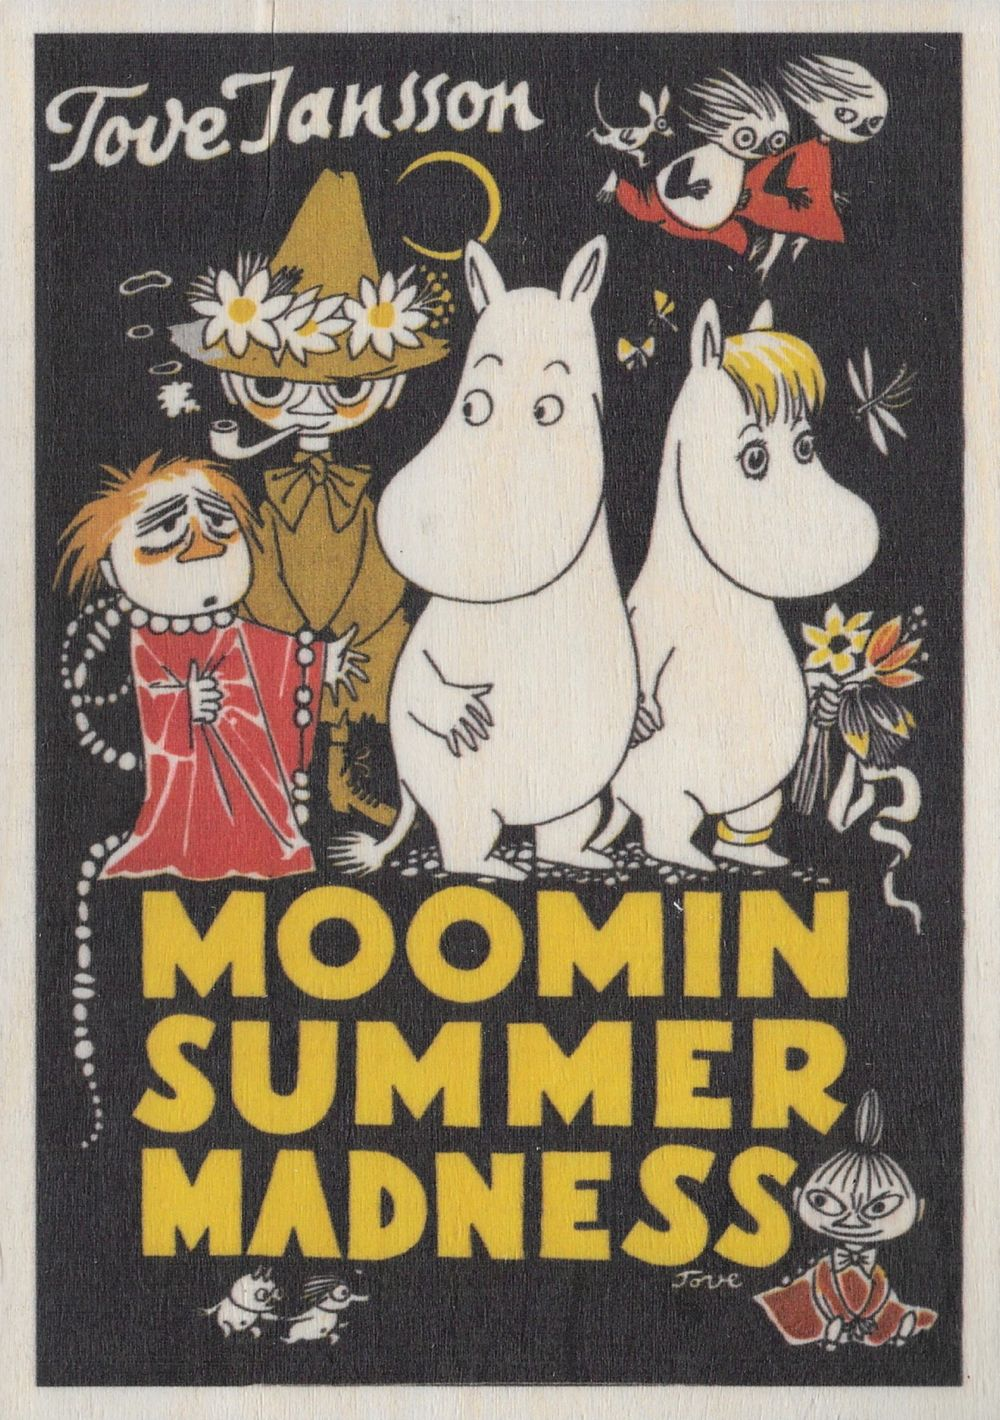 Come to Finland wooden postcard Summer Madness MU37